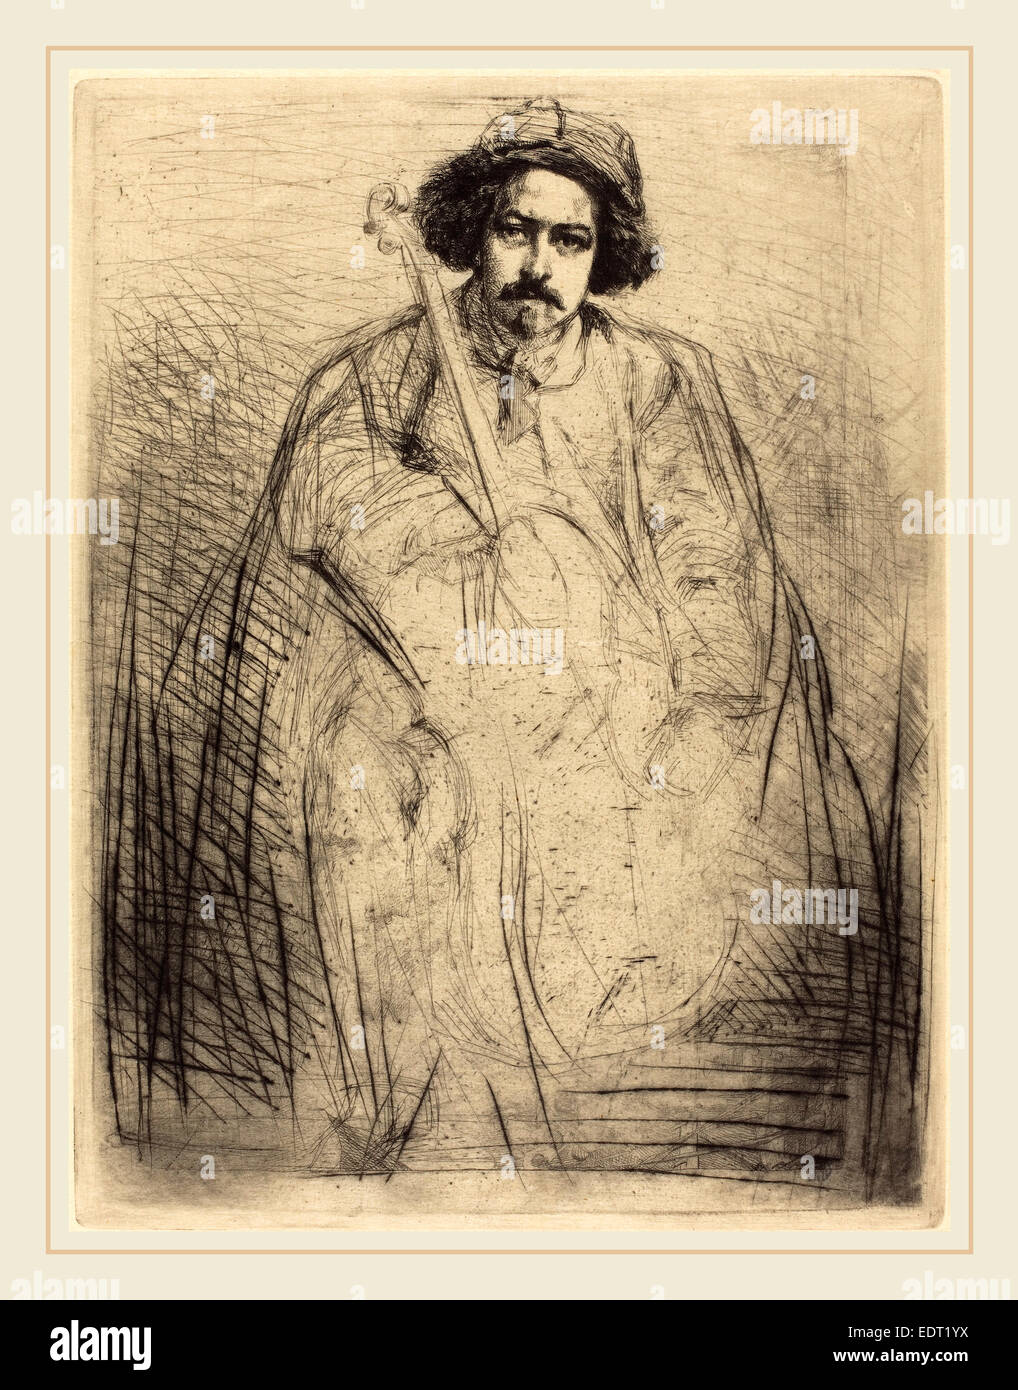 James McNeill Whistler (American, 1834-1903), Becquet, 1859, etching - Stock Image